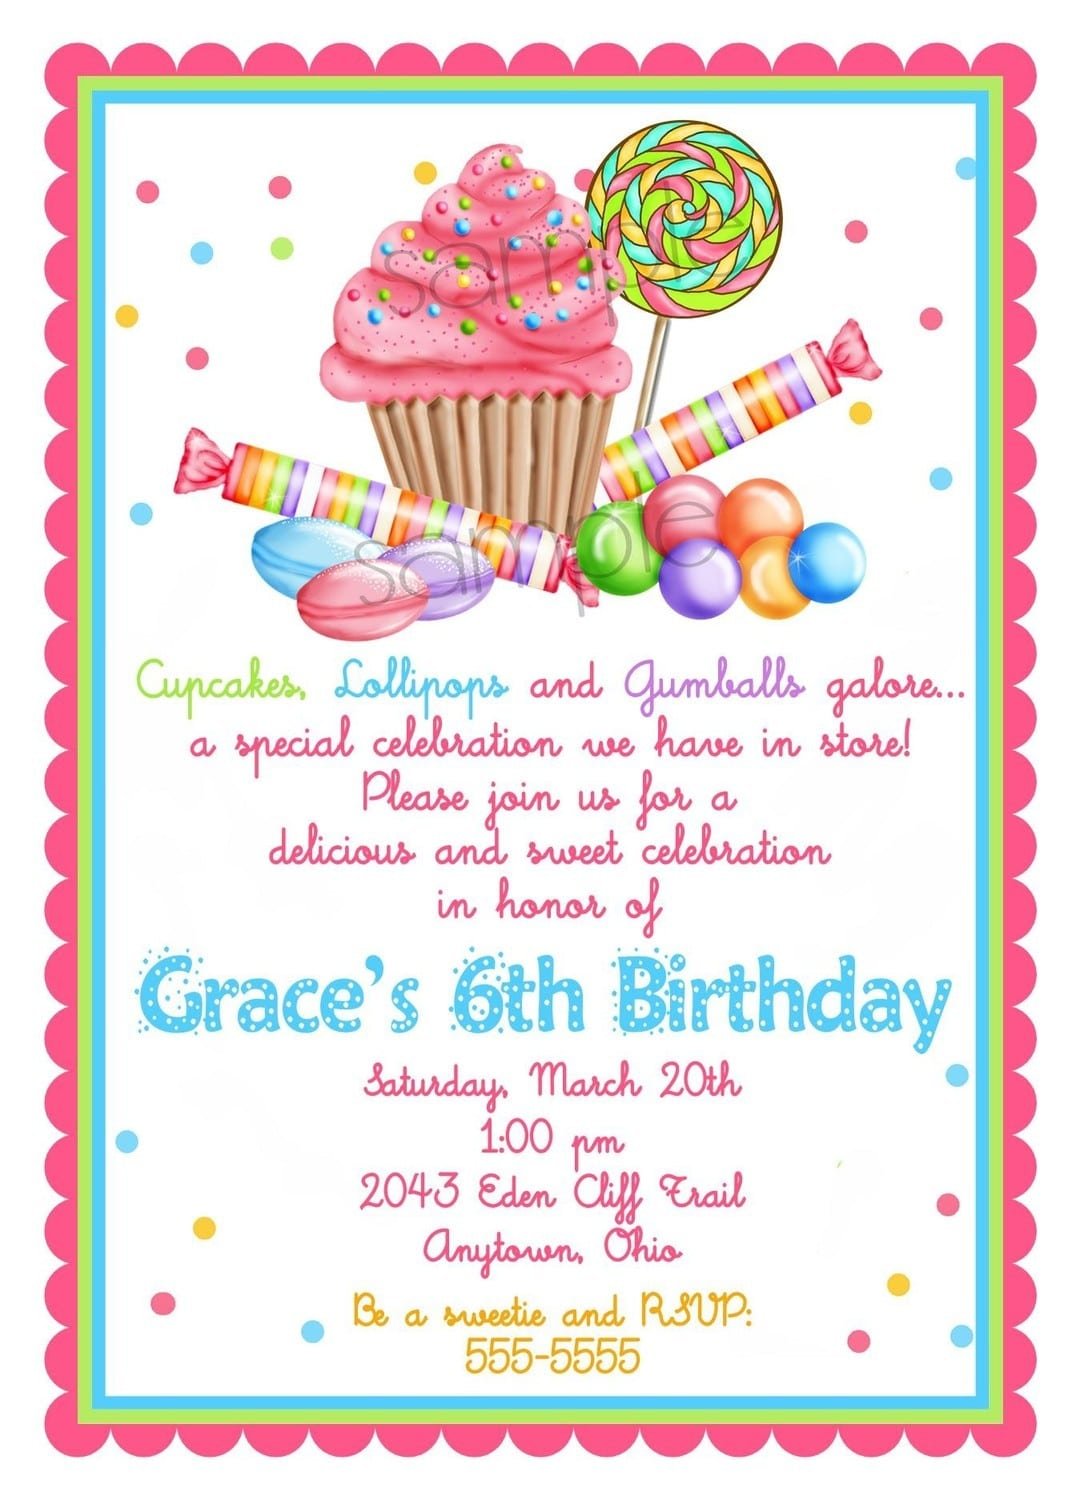 Tupperware Party Invitation Wording - Mickey Mouse Invitations Templates